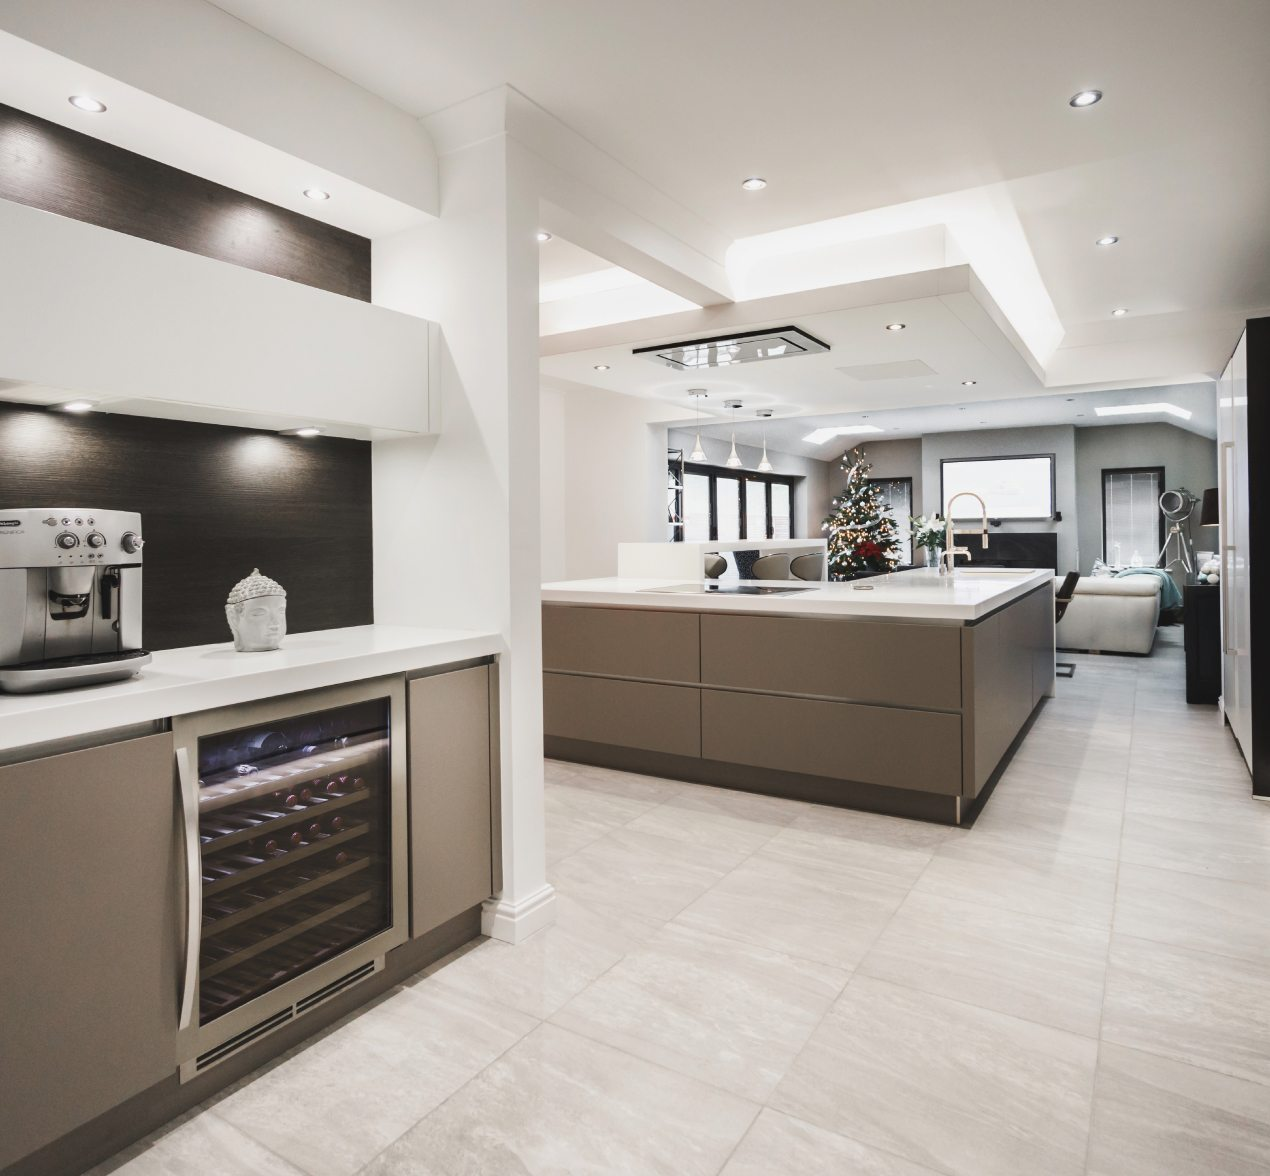 Designer Kitchen Case Study In Colne